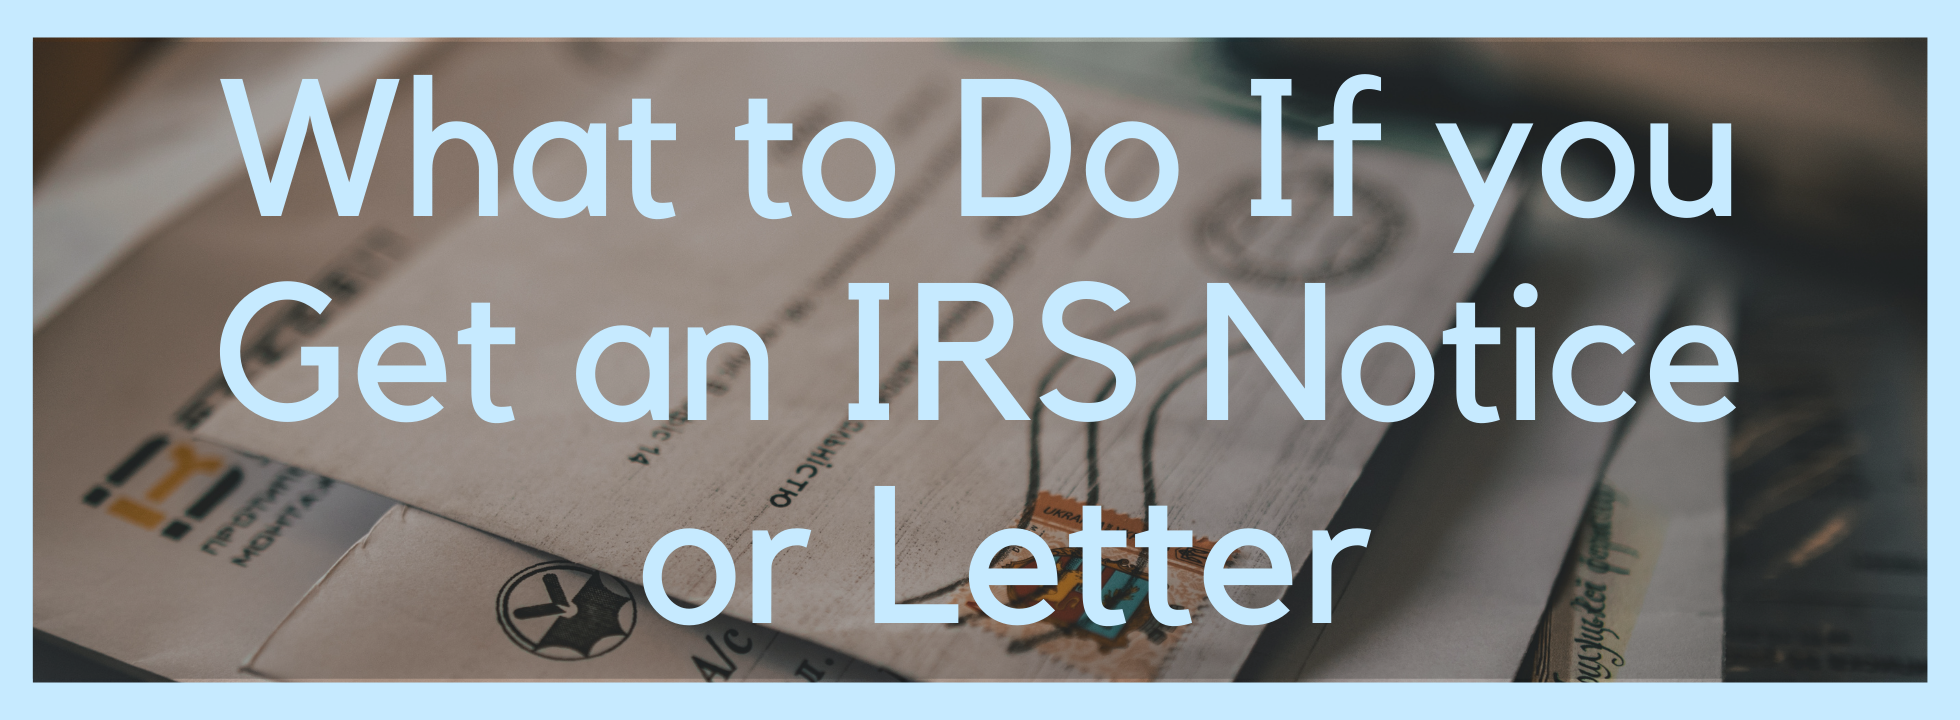 What to Do If you Receive an IRS Notice or Letter (1)